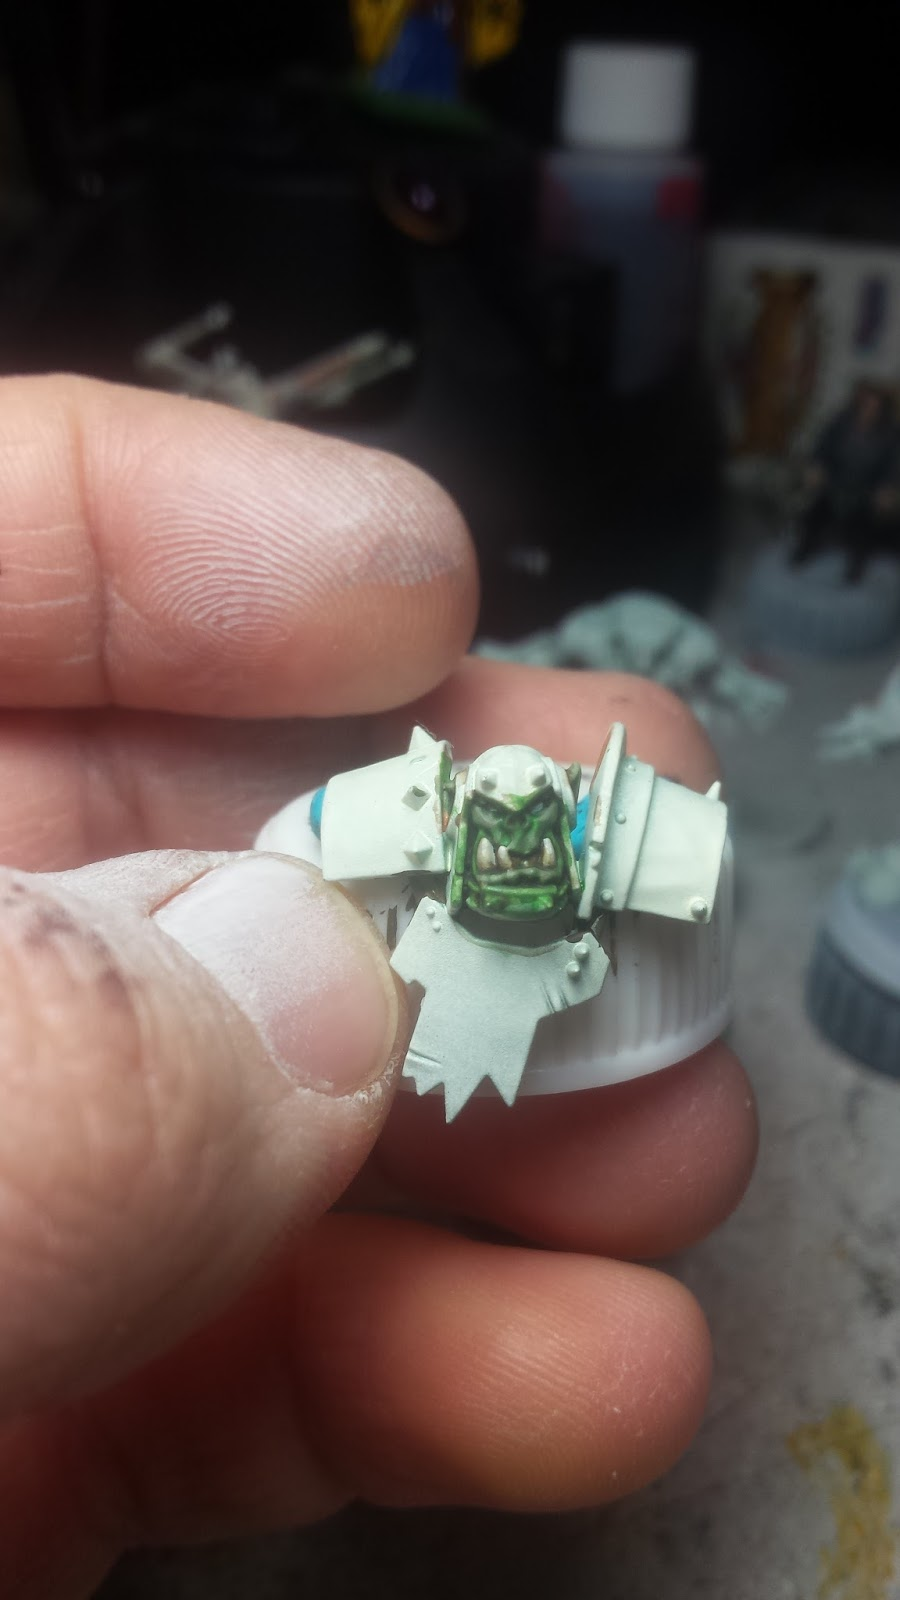 Brush Wizard: Blood Bowl: Starting on the Orc Team